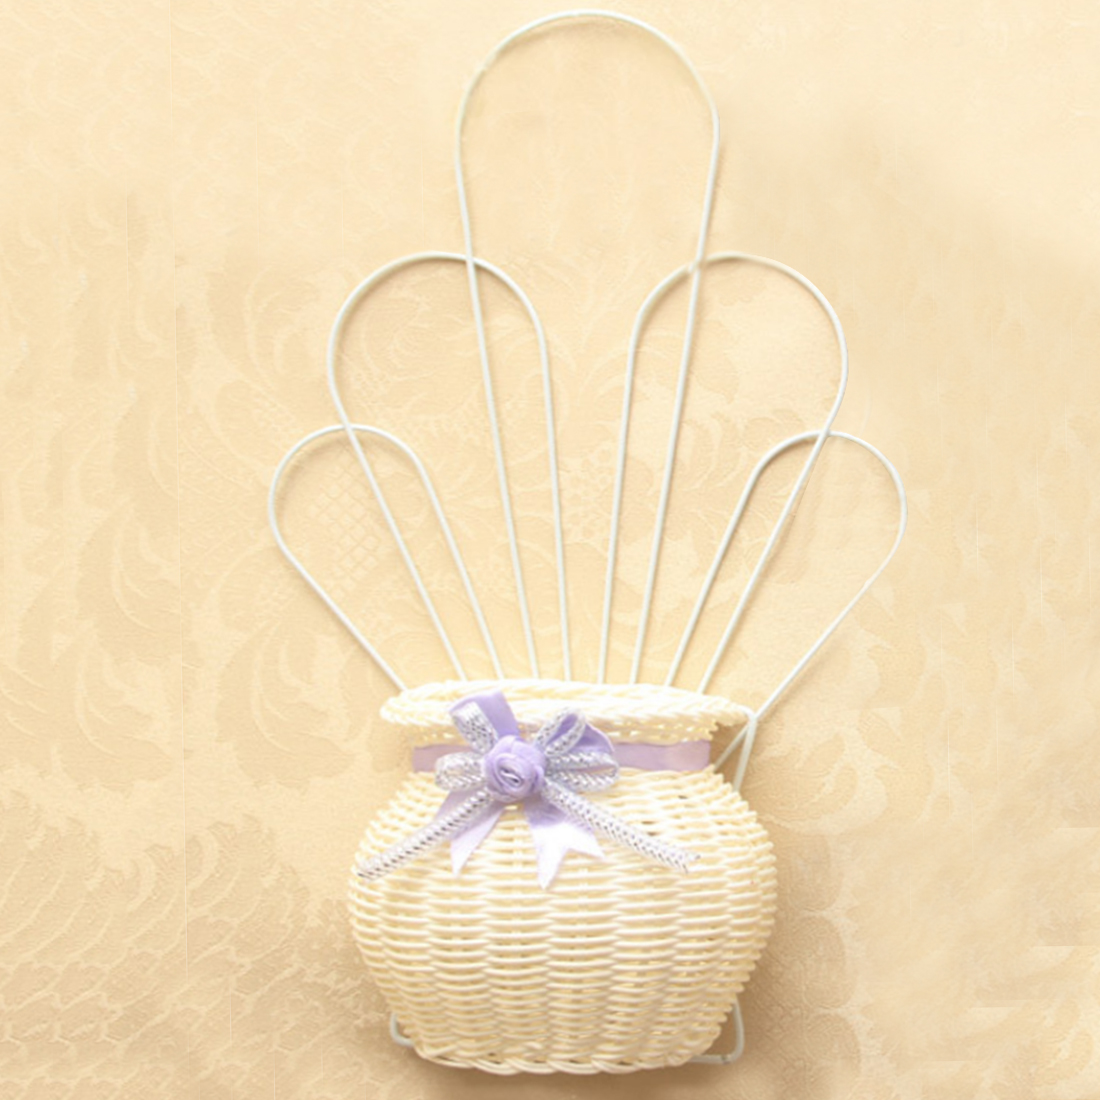 Decorative Basket Wall Art Compare Prices On Rattan Wall Basket Online Shopping Buy Low